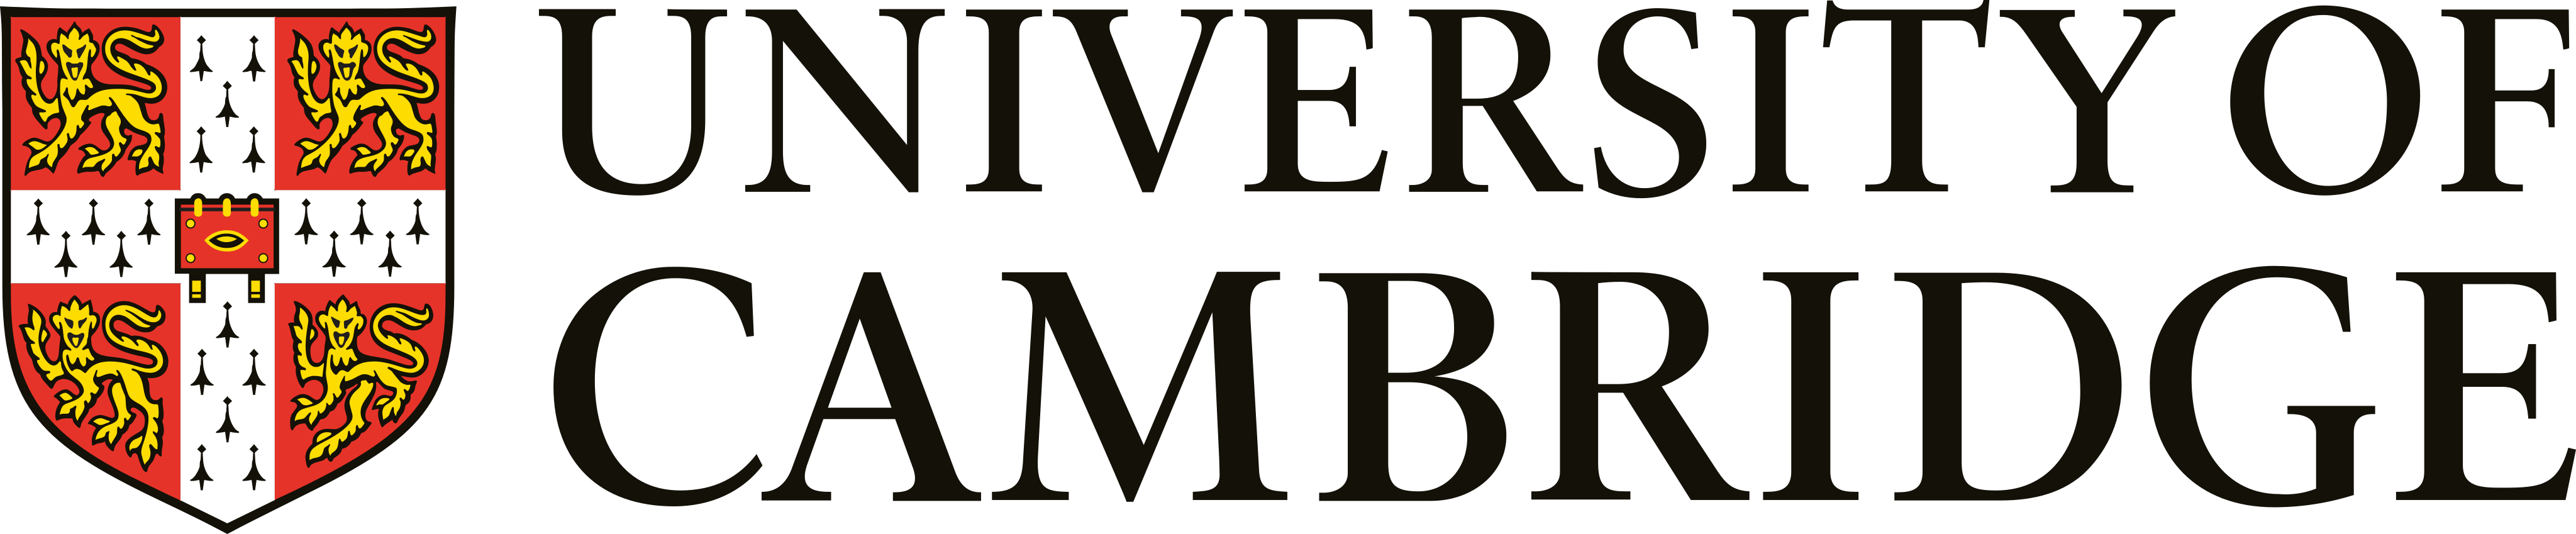 university of cambridge logo - University of Cambridge Logo